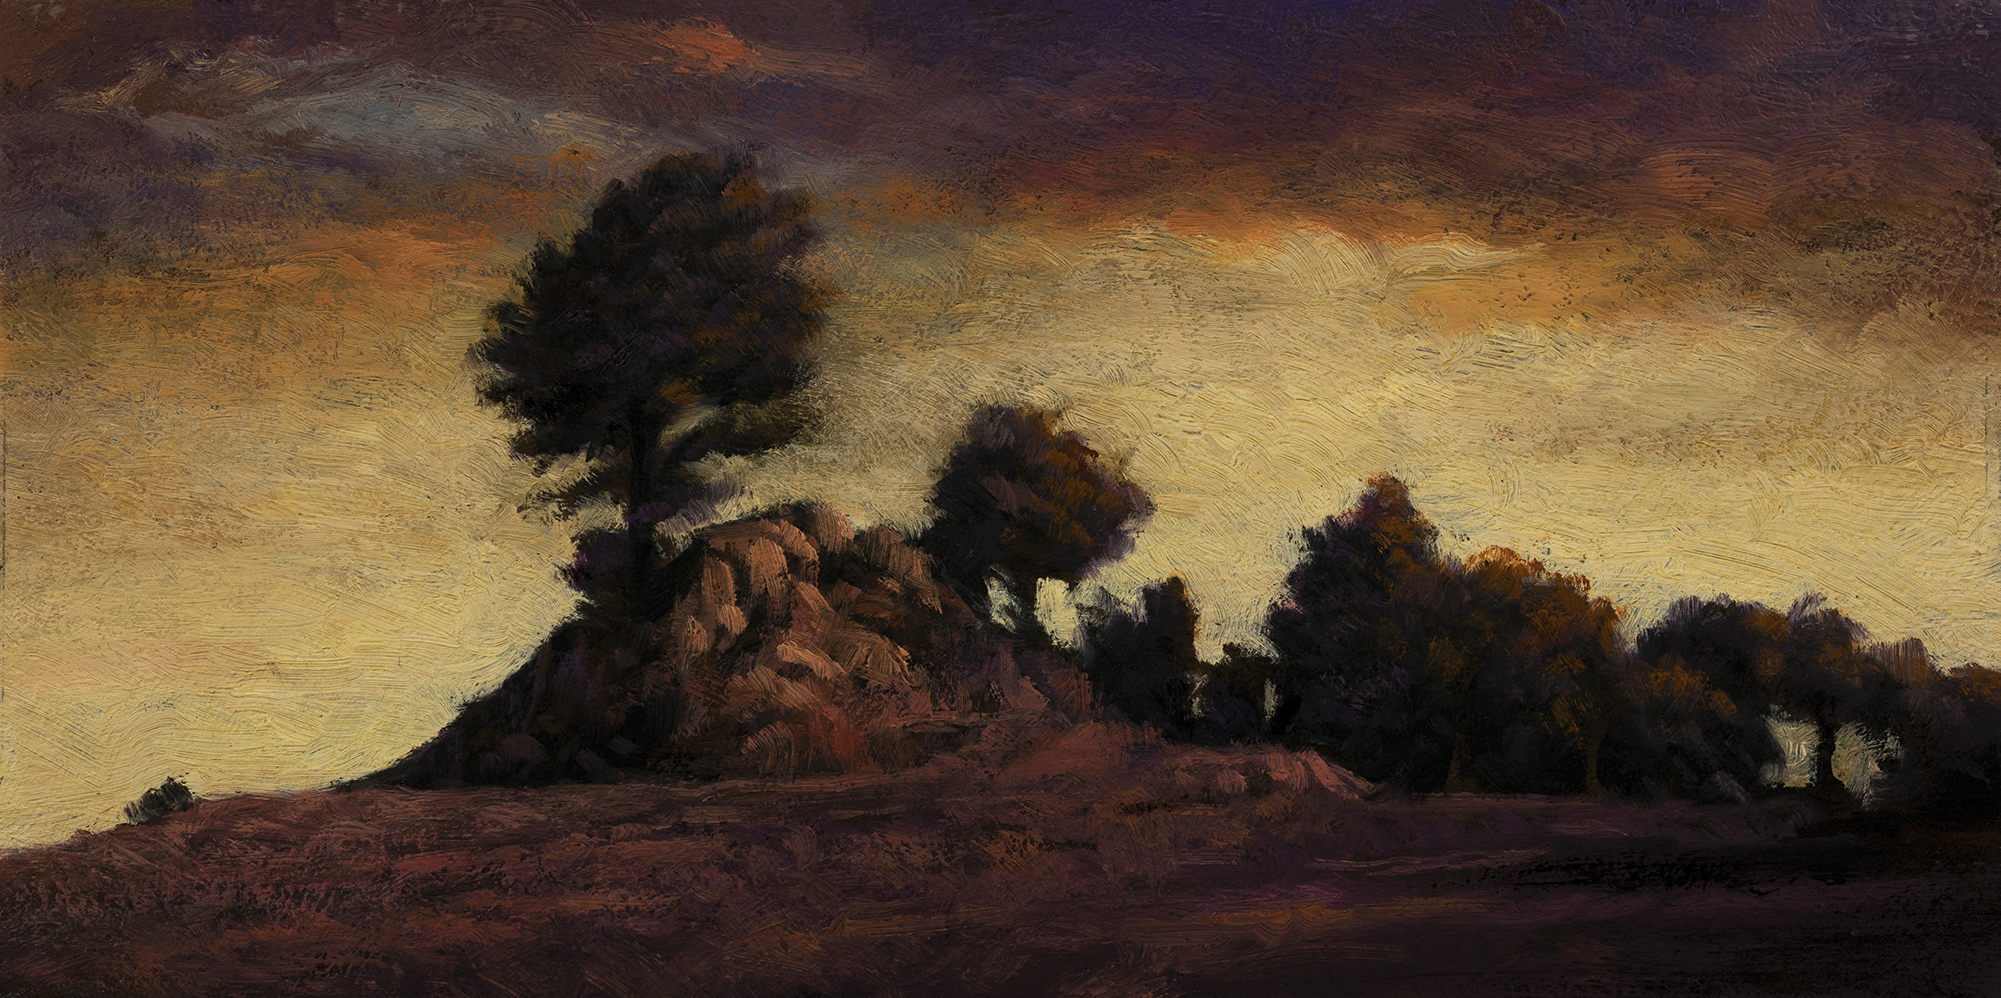 Close to Dusk by M Francis McCarthy - 5x10 Oil on Wood Panel